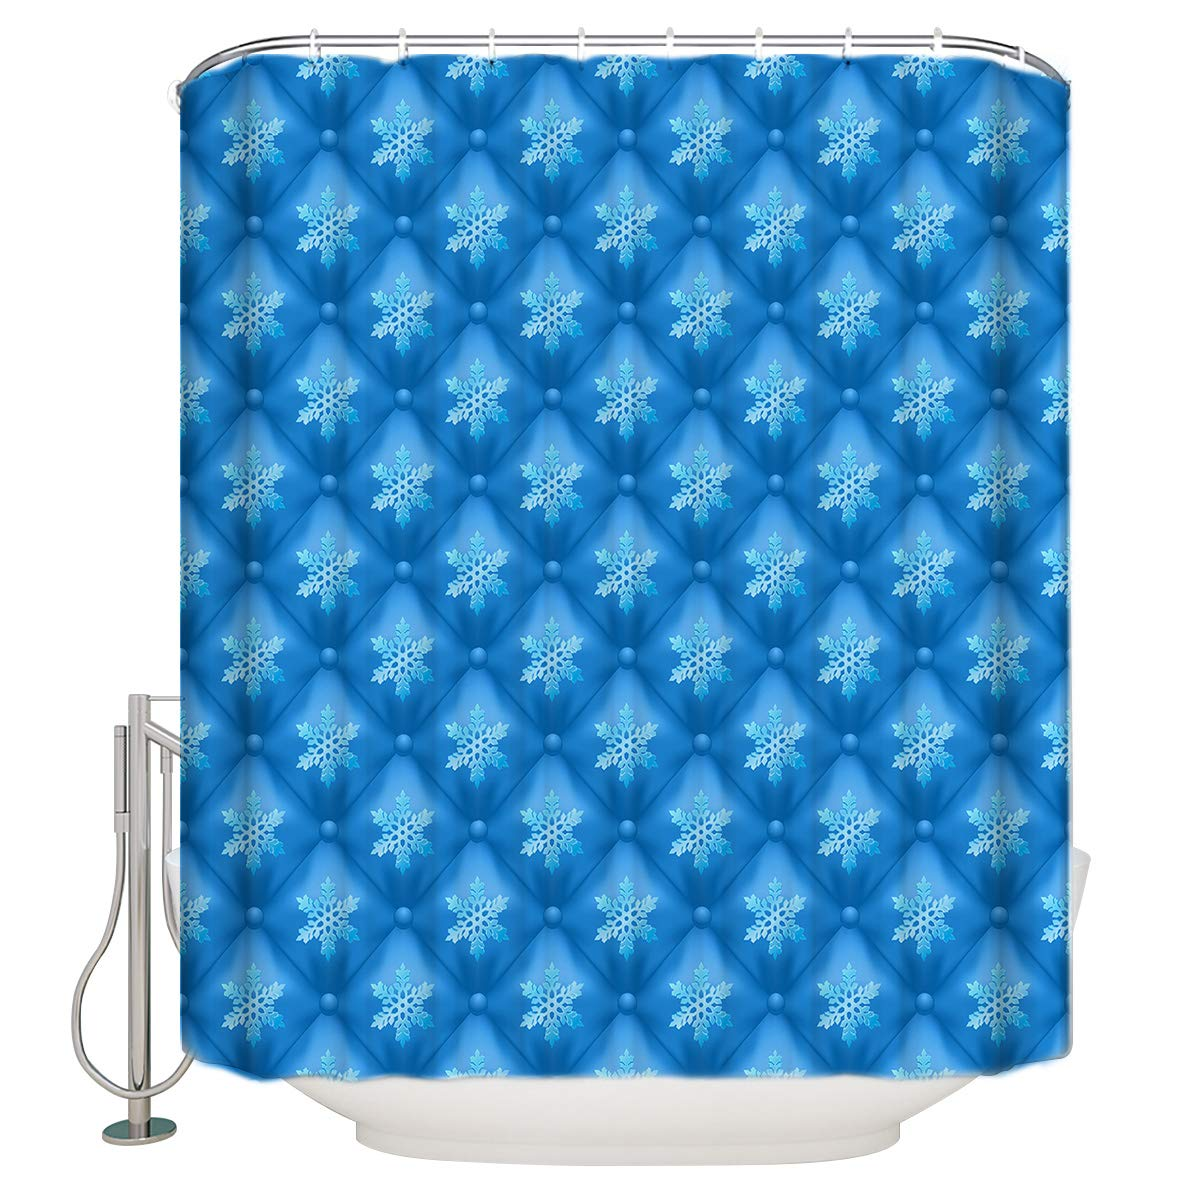 6d33e56c Amazon.com: TweetyBed Christmas Background Blue White Snowflake Water- Repellent and Mildew-Resistant Fabric Shower Curtain Bathroom Decorations  Stall Size ...